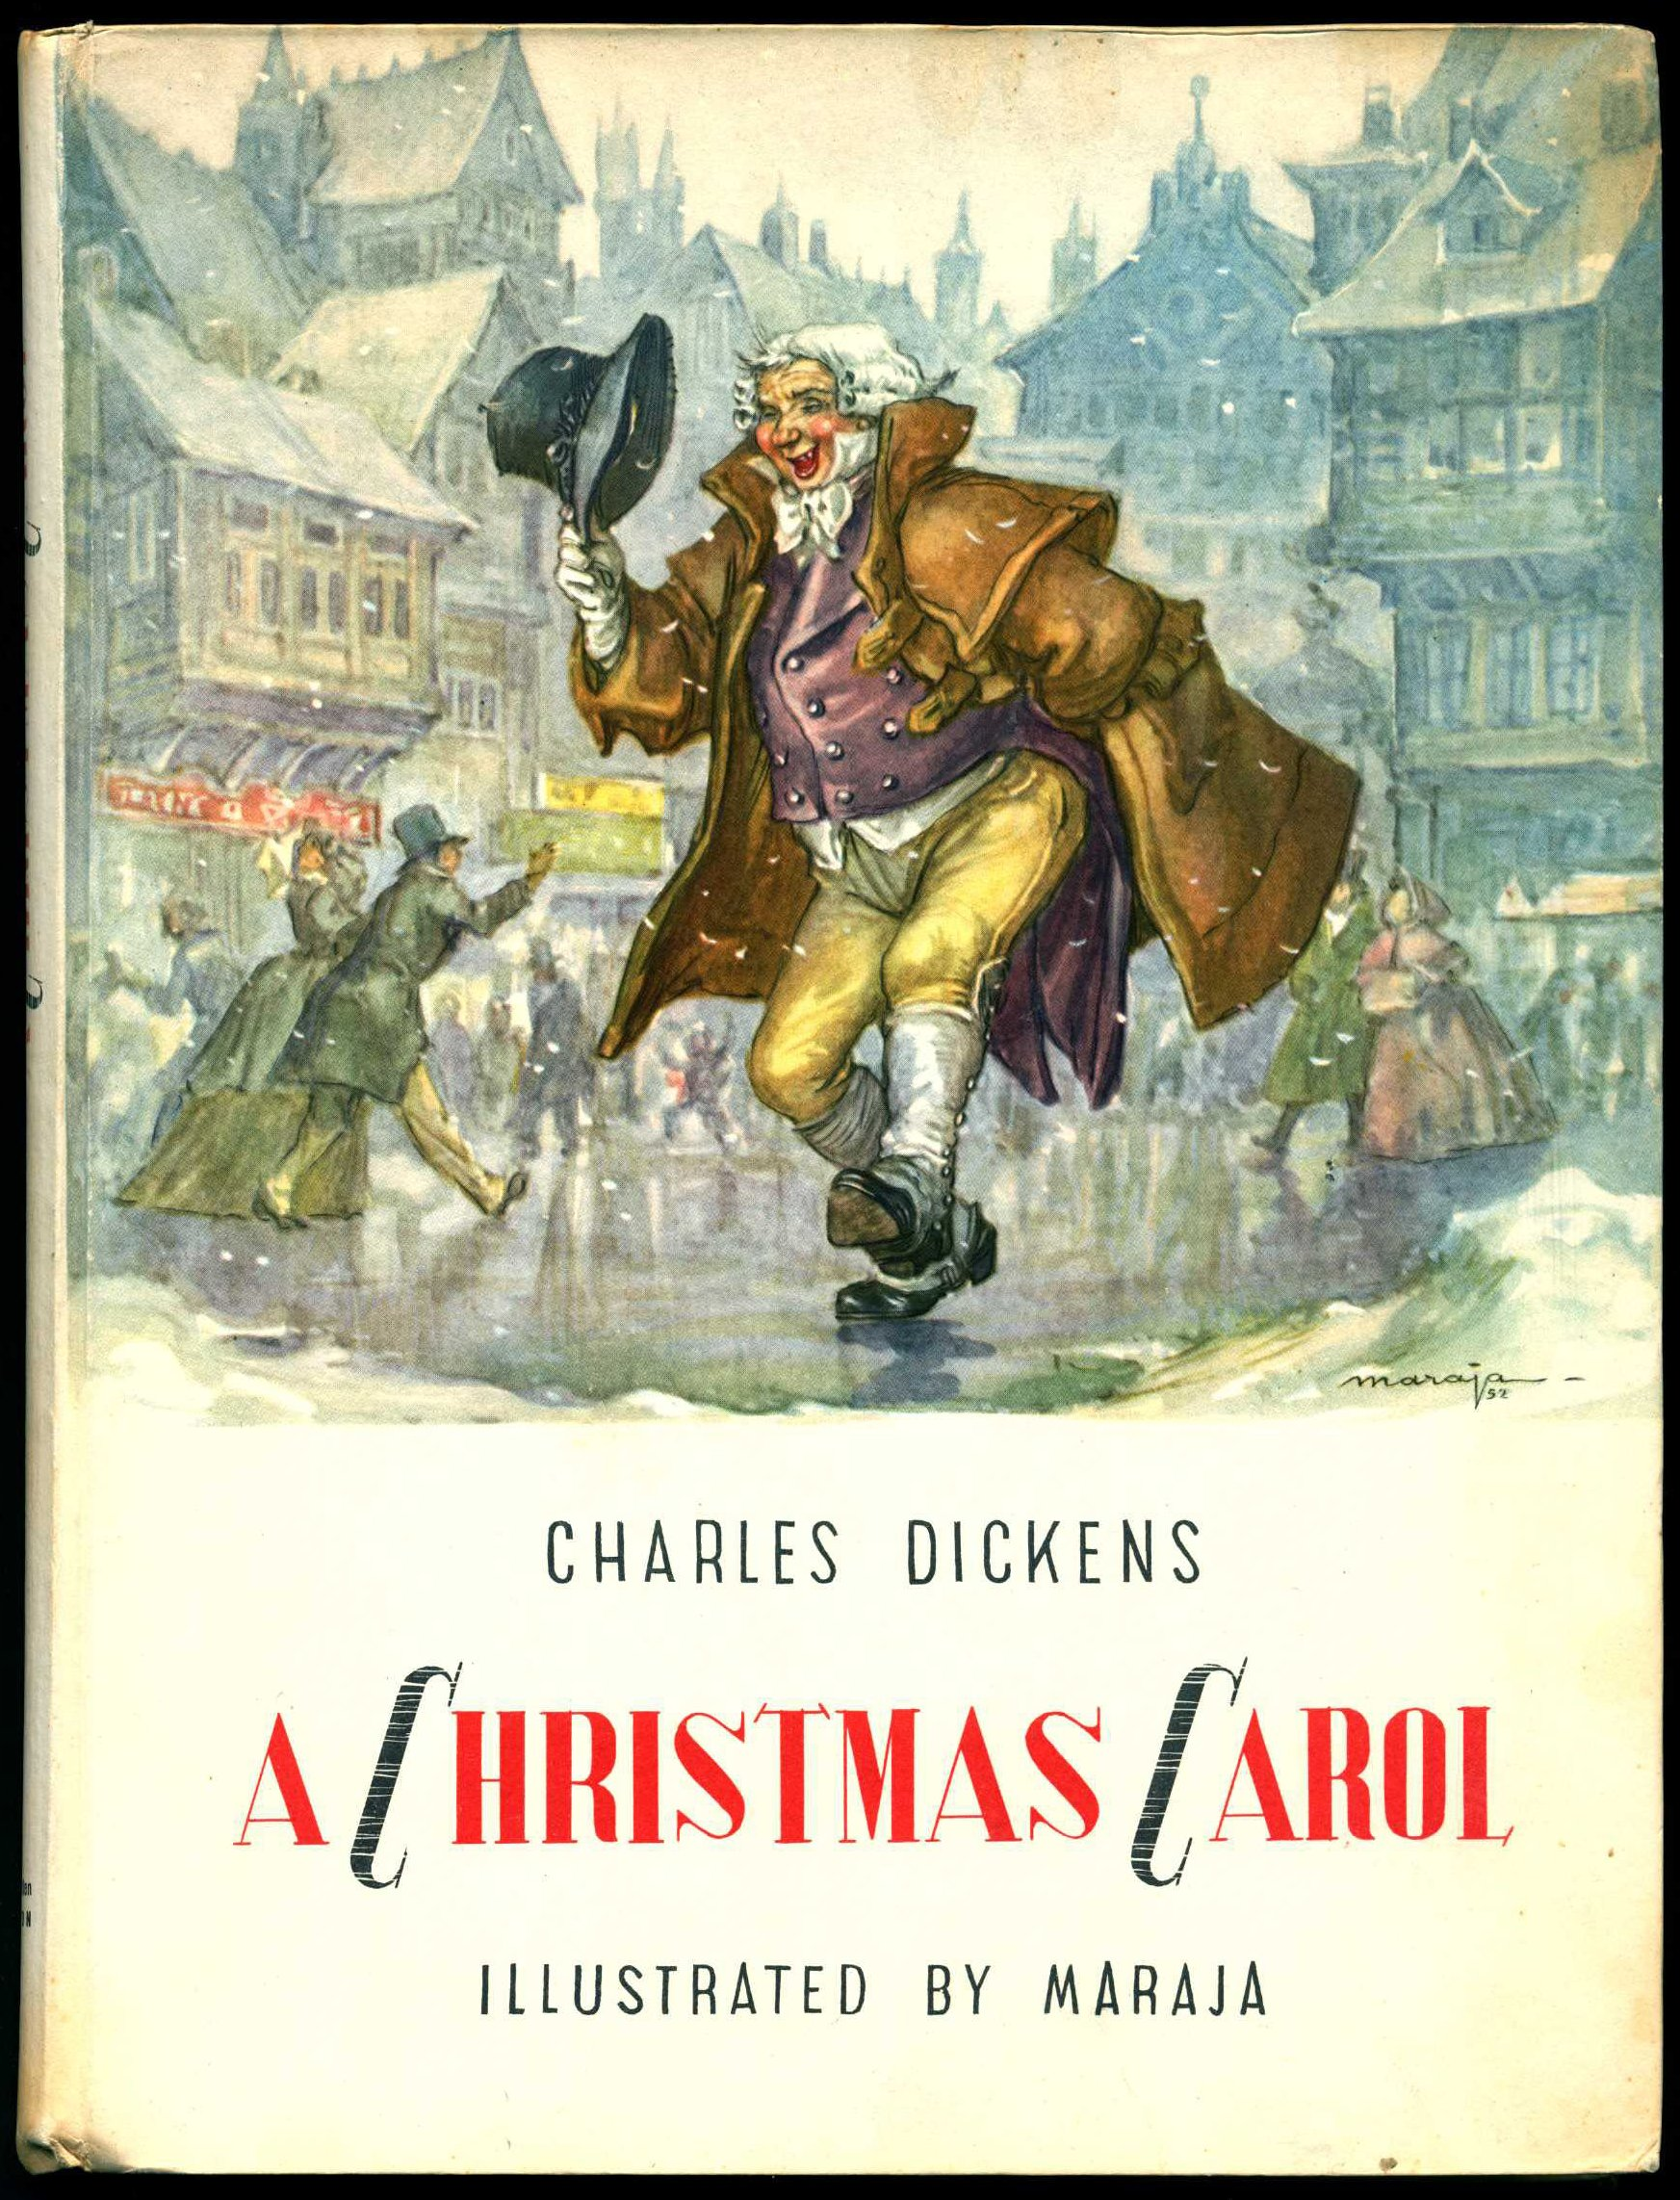 Charles Dickens. A Christmas Carol. Illustrations by Libico Maraja. London: W.H. Allen, 1958.